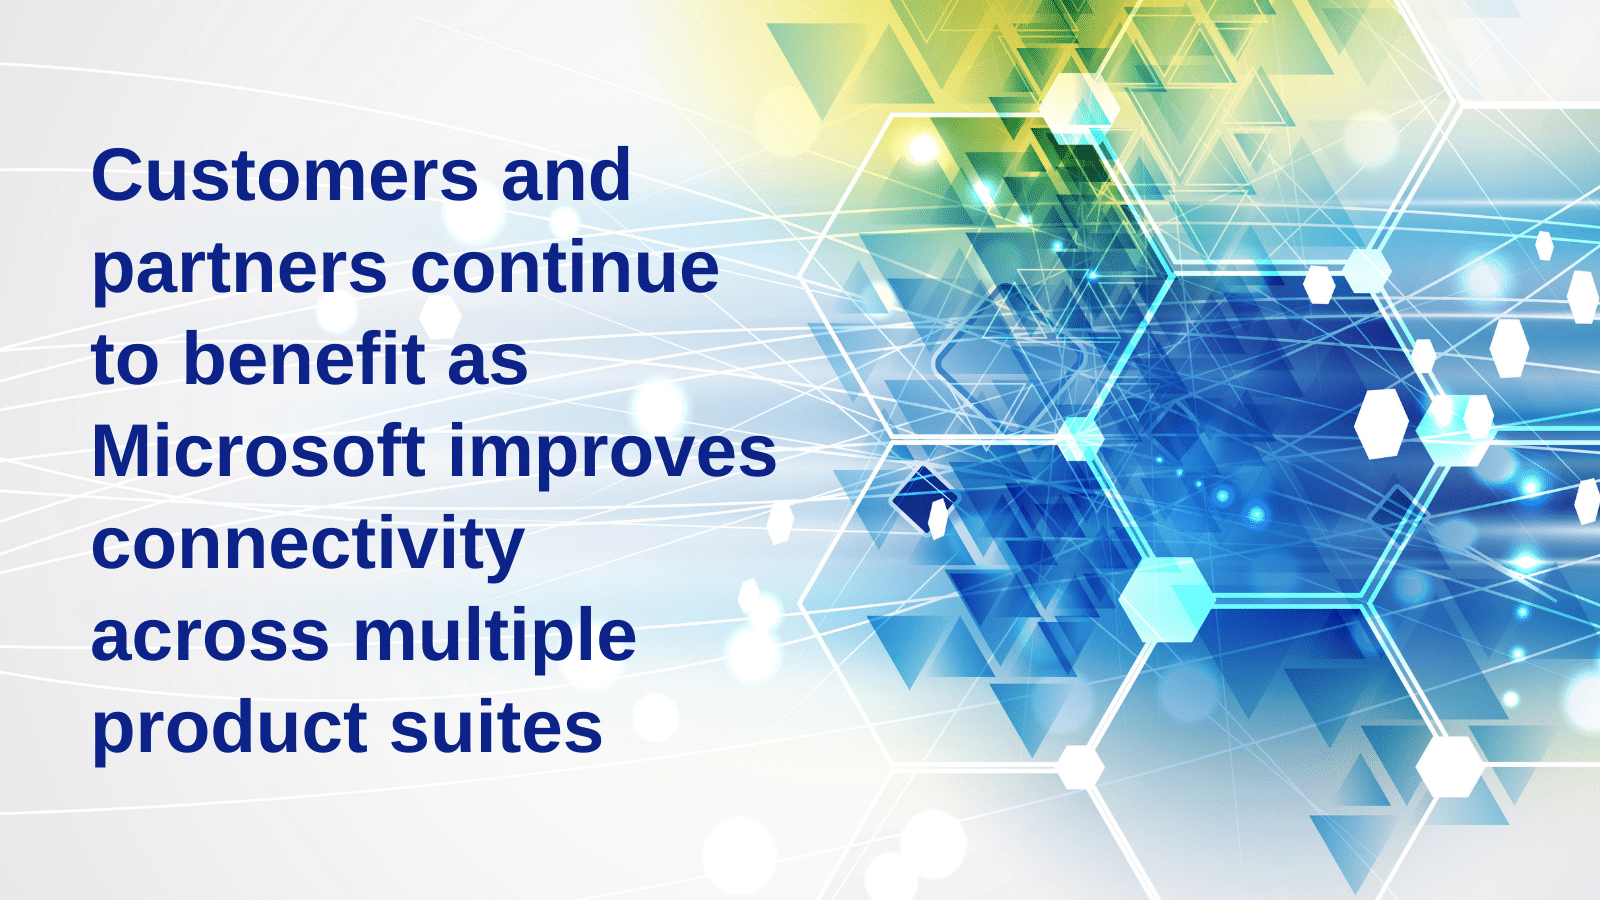 Business Central Fall 2020 update: Customers and partners continue to benefit as Microsoft improves connectivity across multiple product suites.